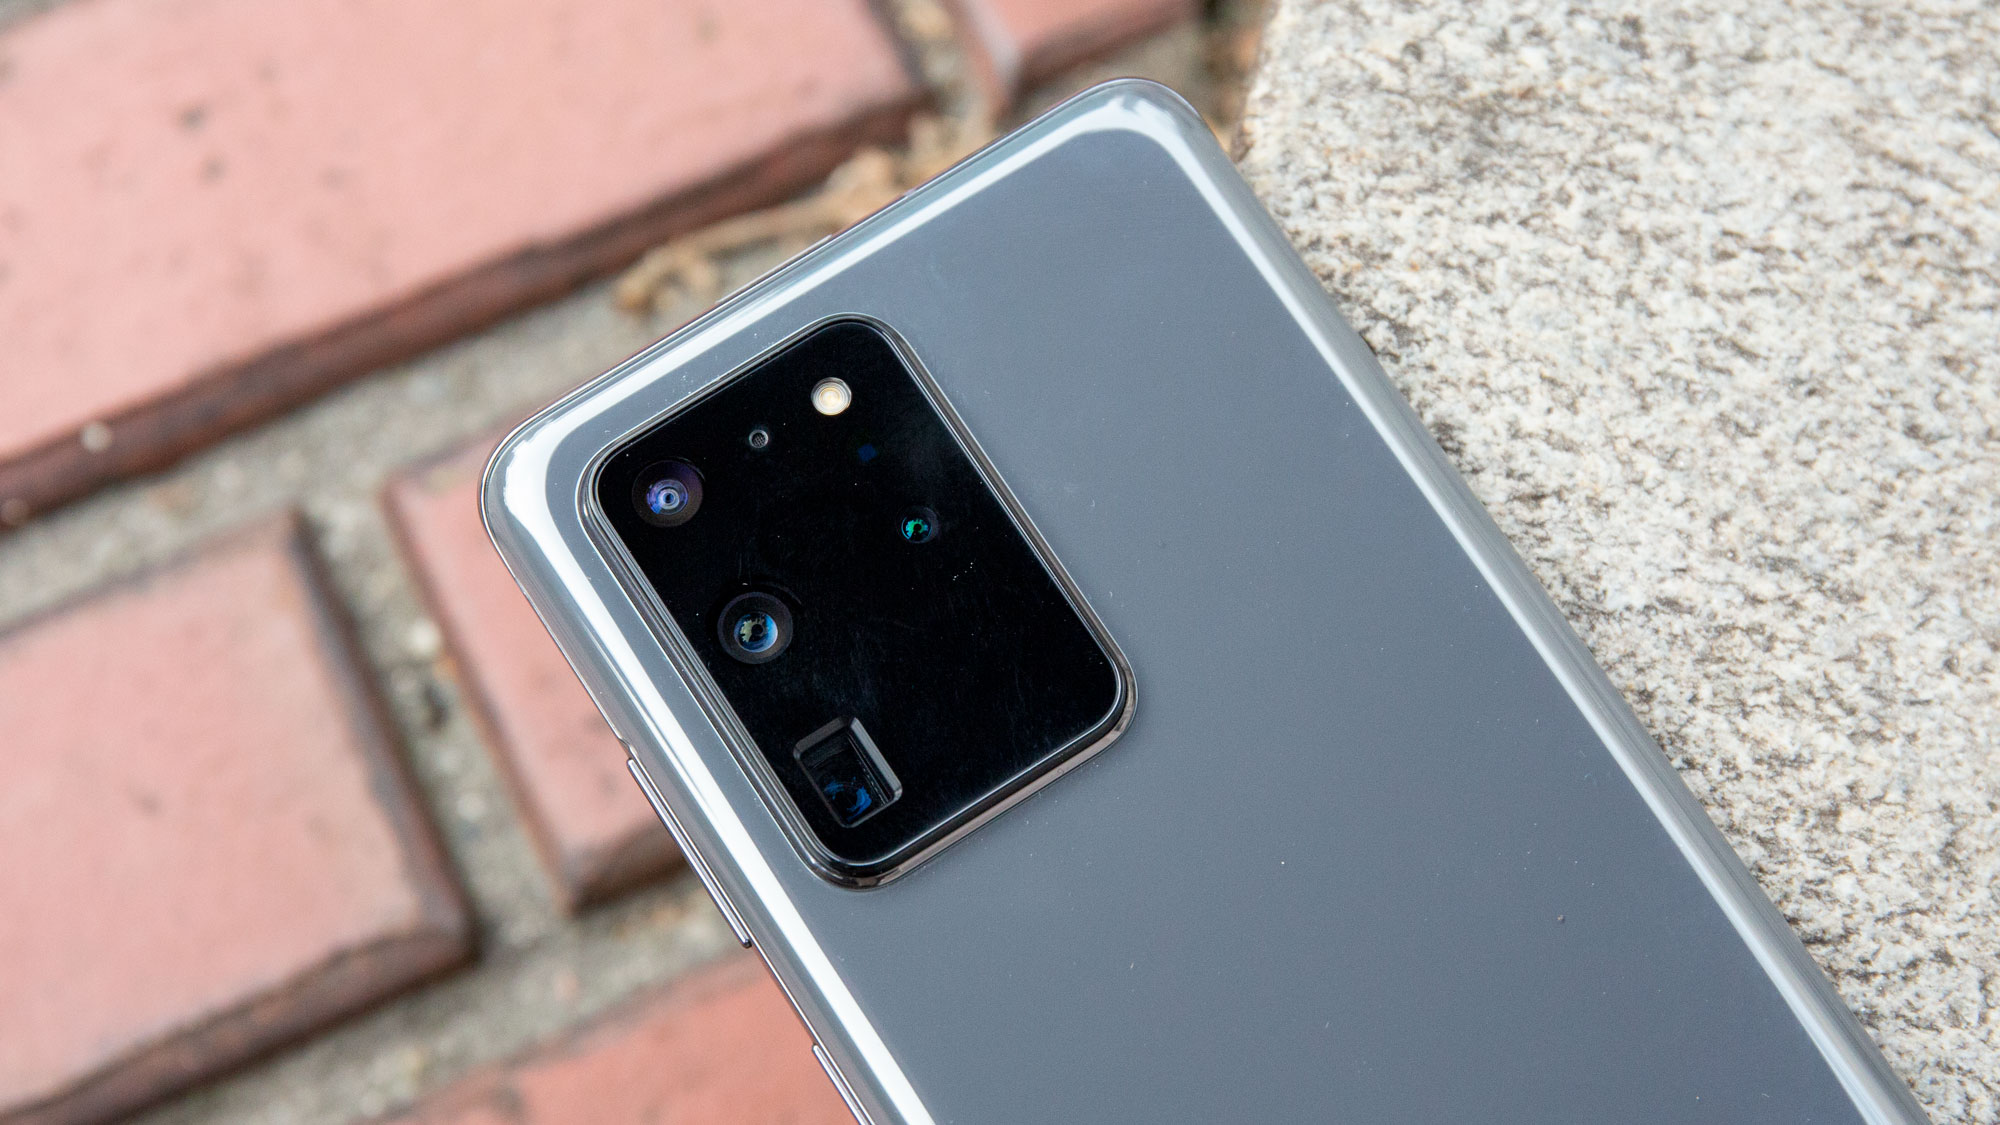 Best Value Smartphone 2021 Samsung Galaxy S30 may be the best camera phone of 2021, according